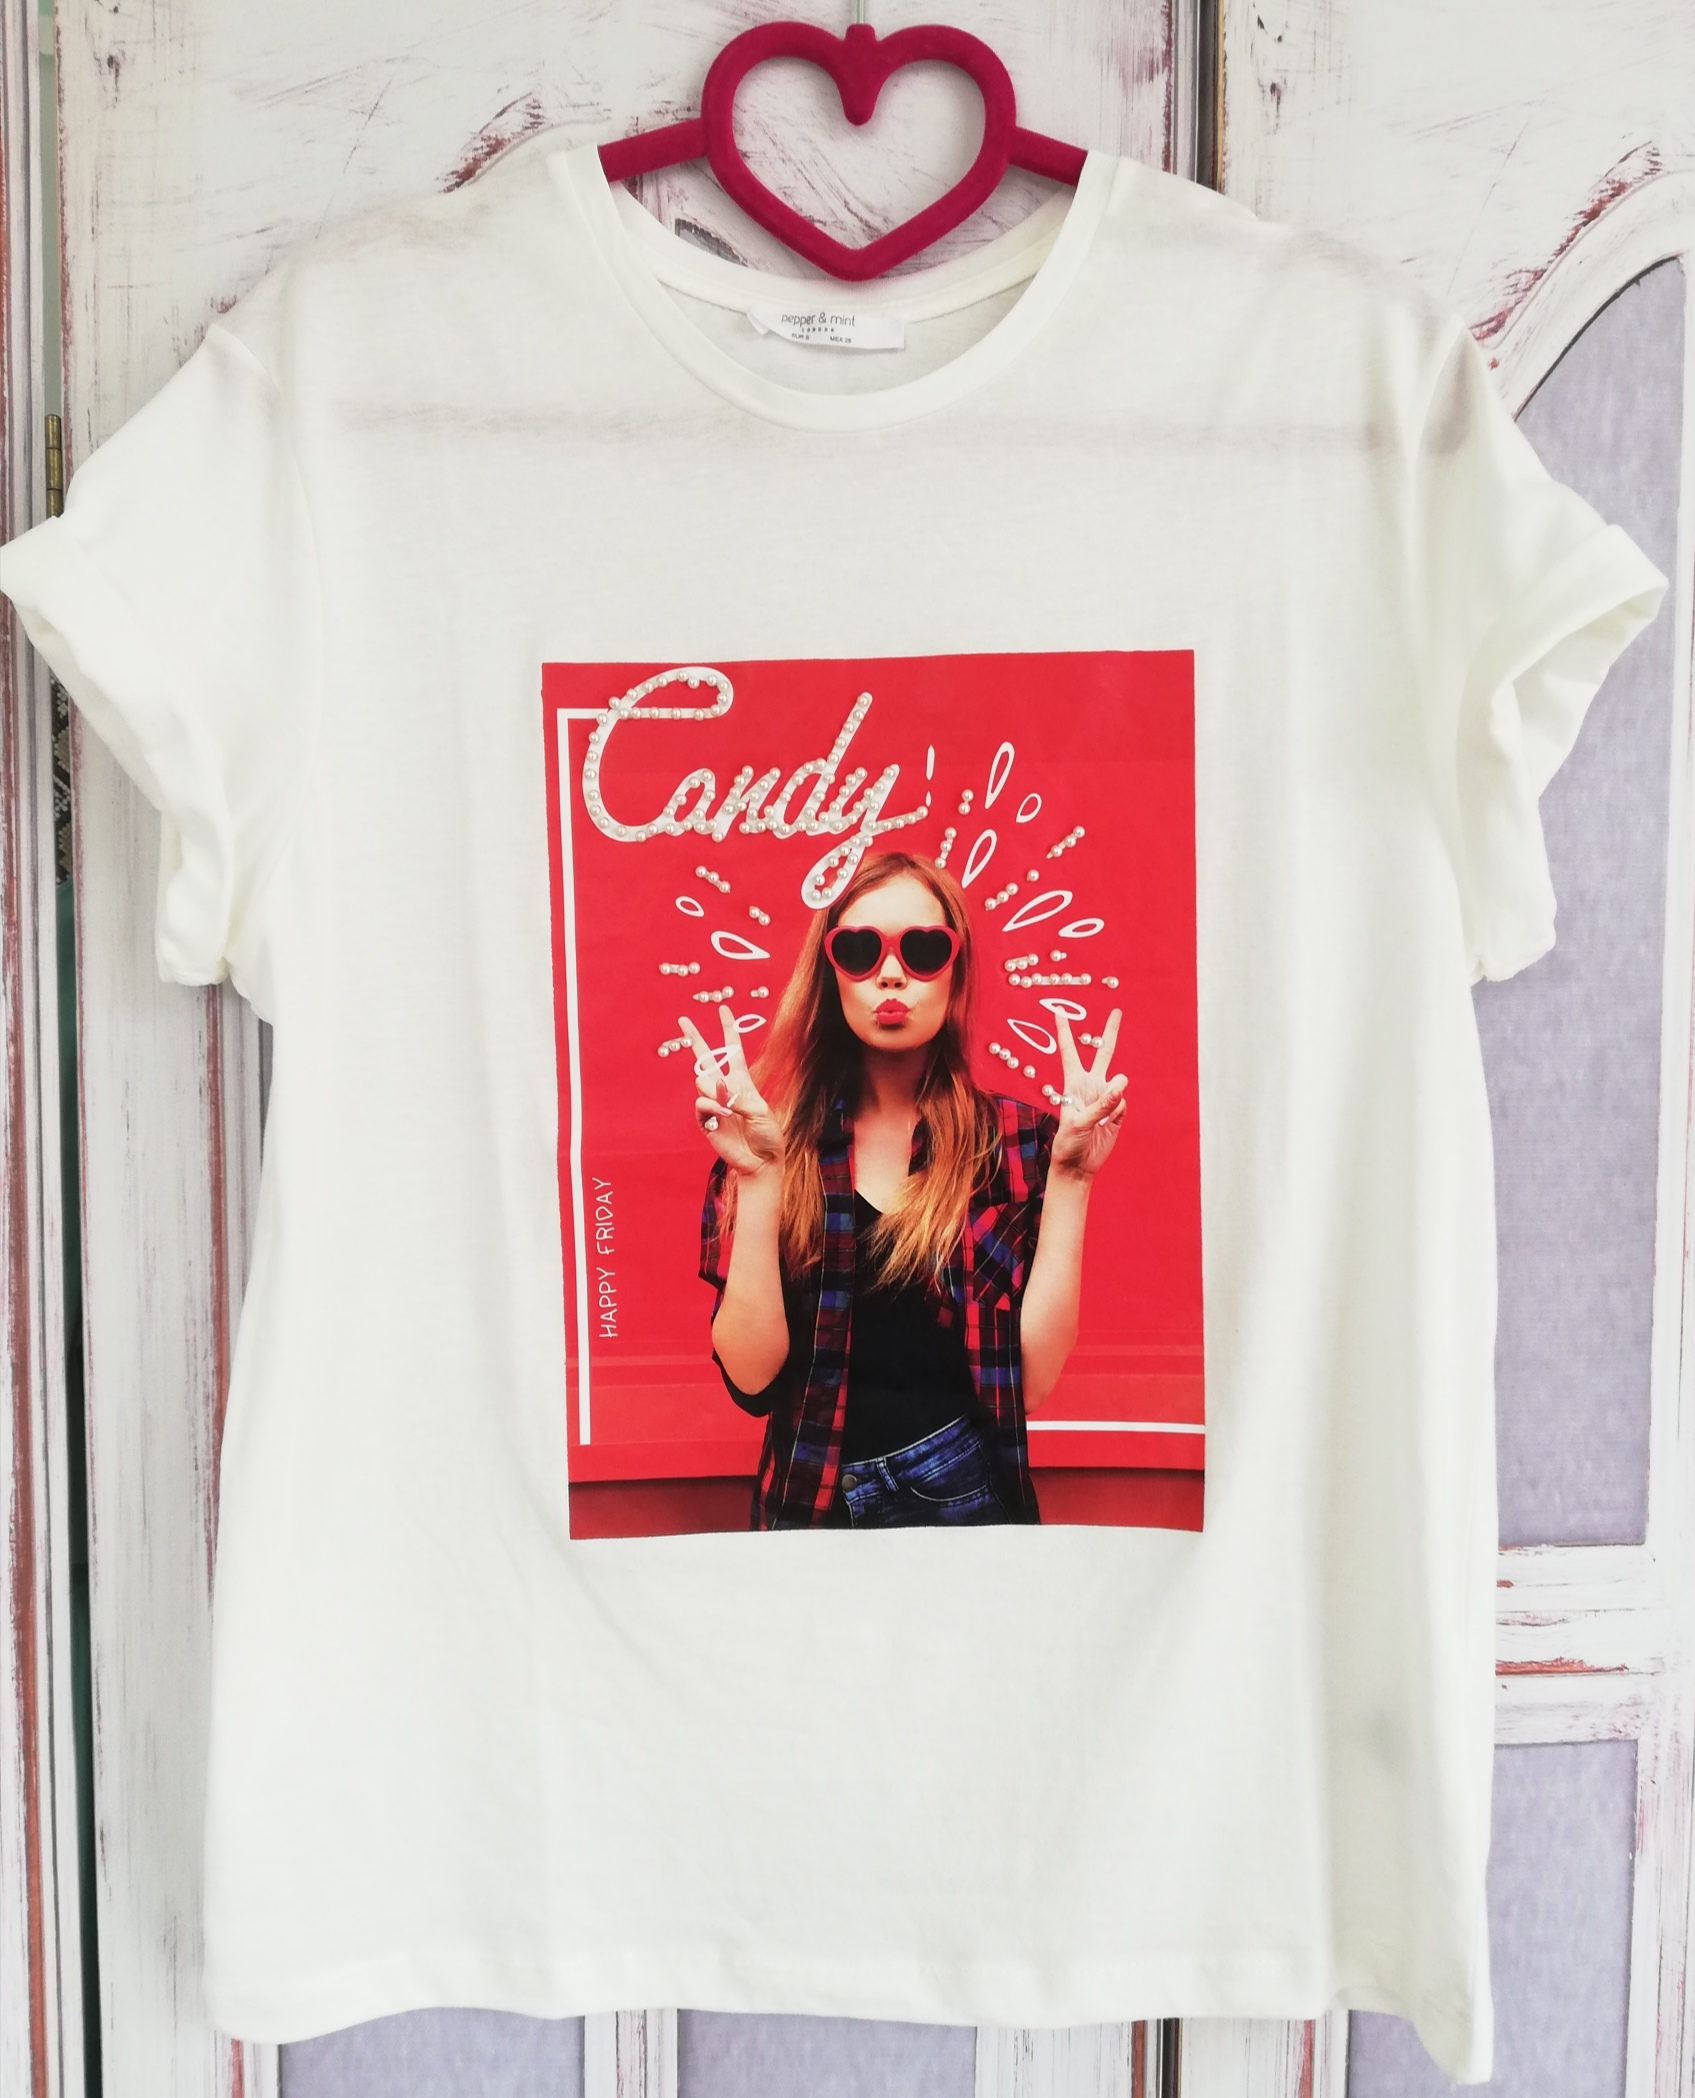 Candy Girl Tshirt's